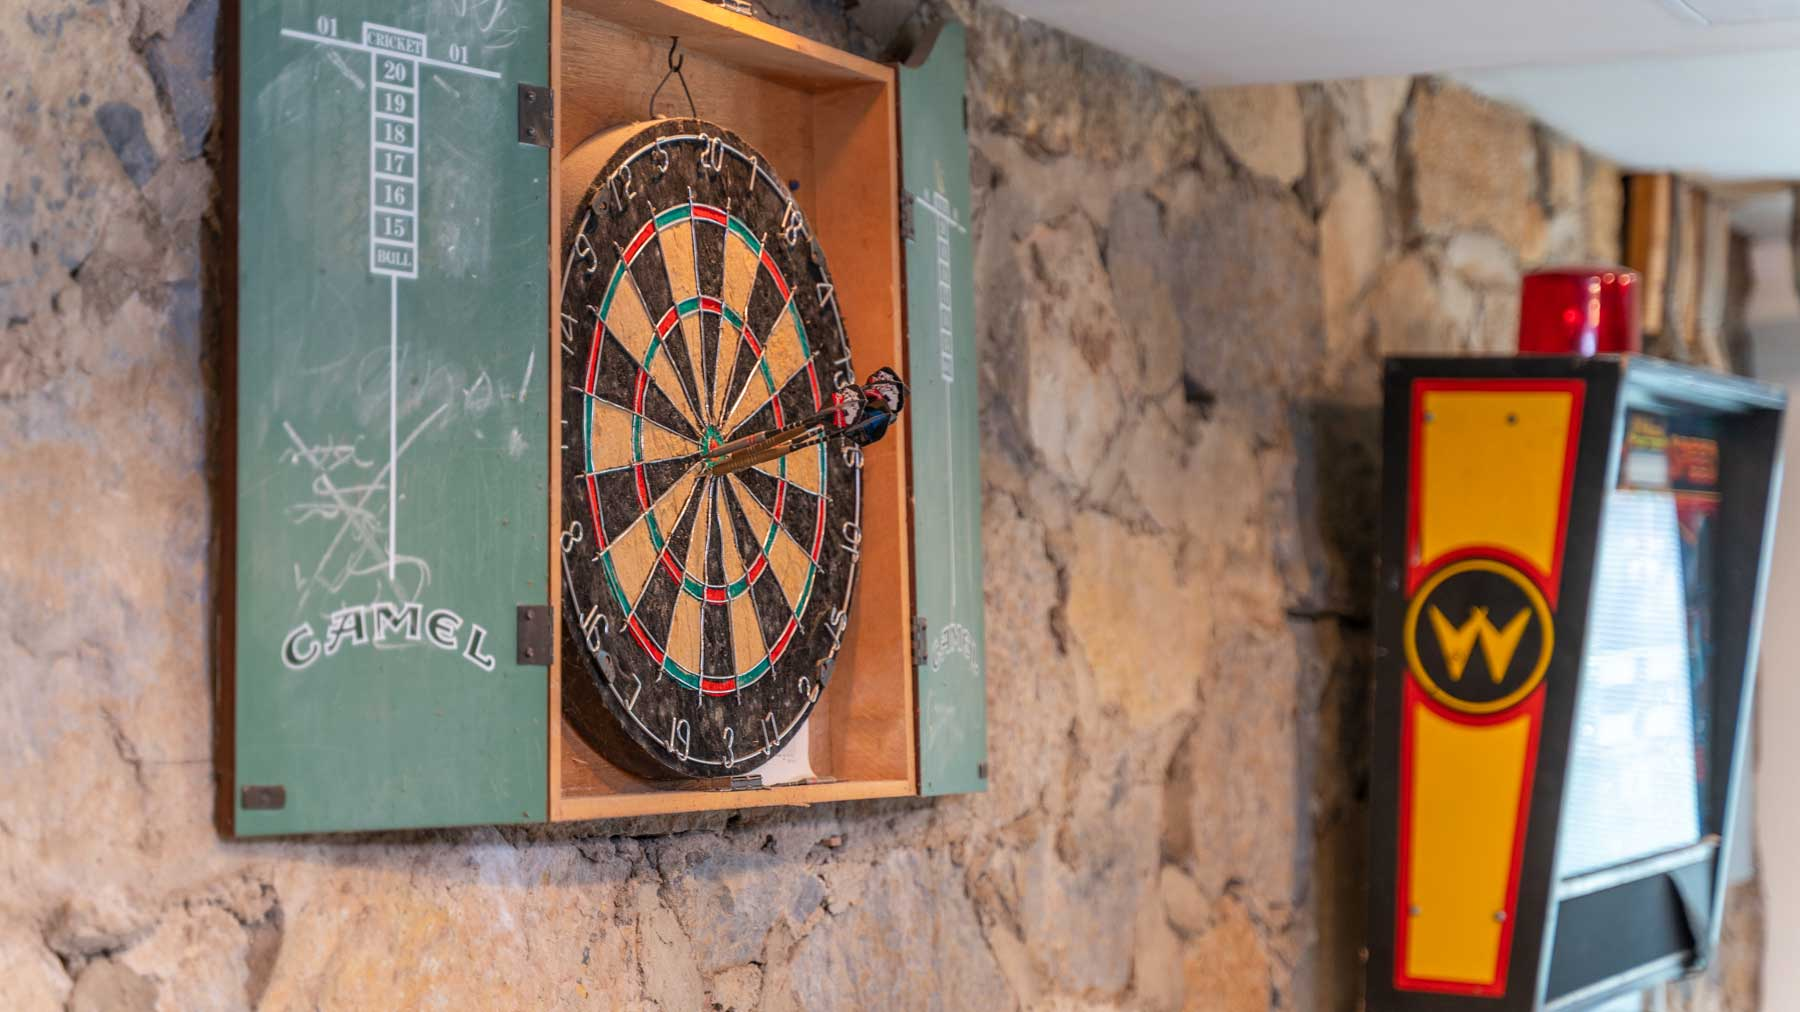 Riverfront retreat basement stone wall and dart board